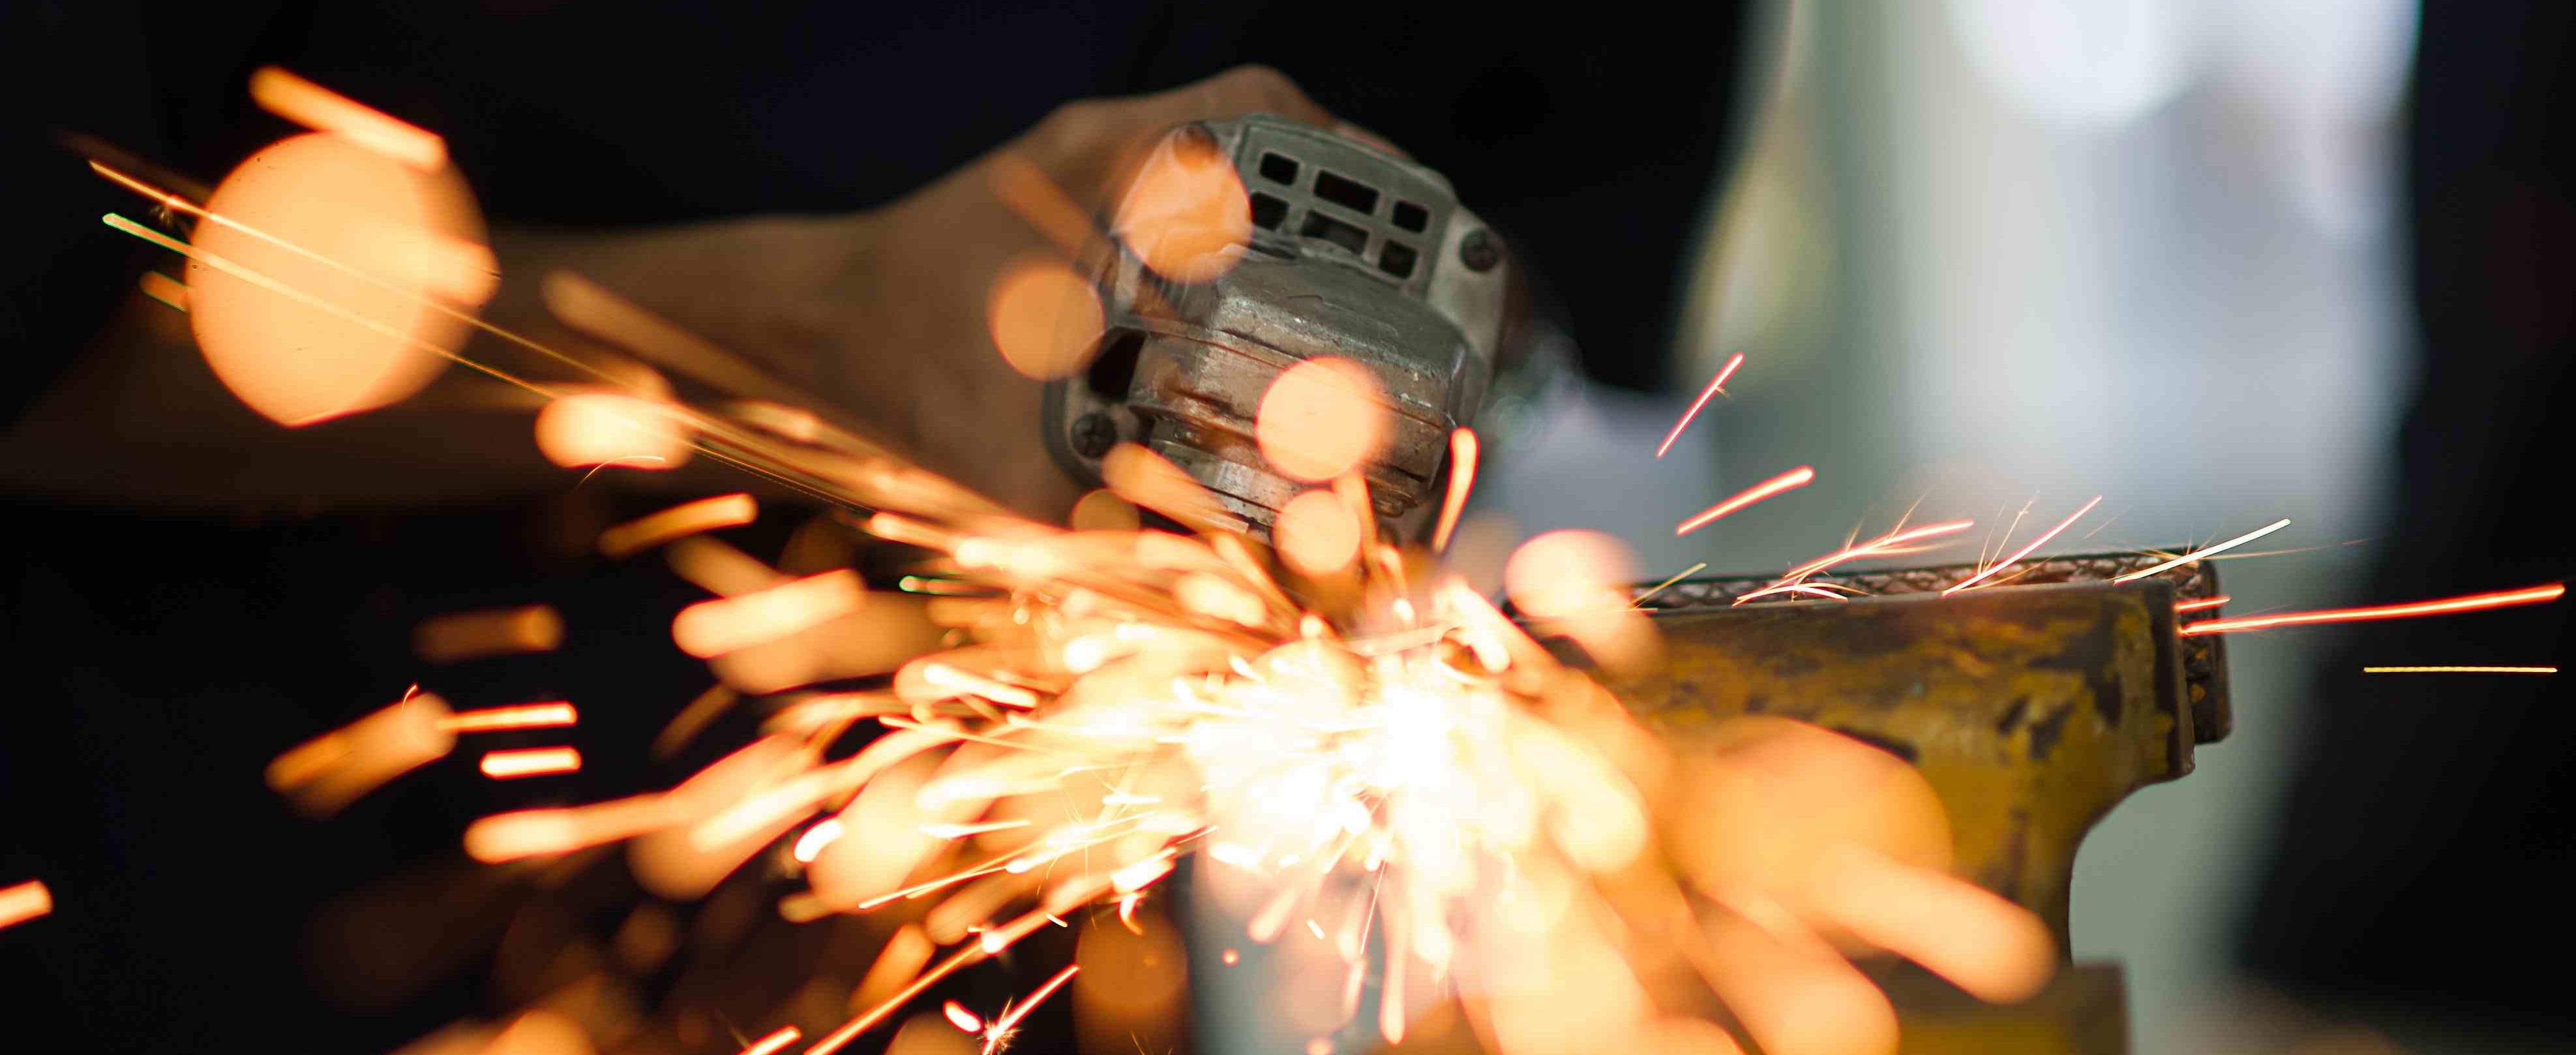 Image of welding process